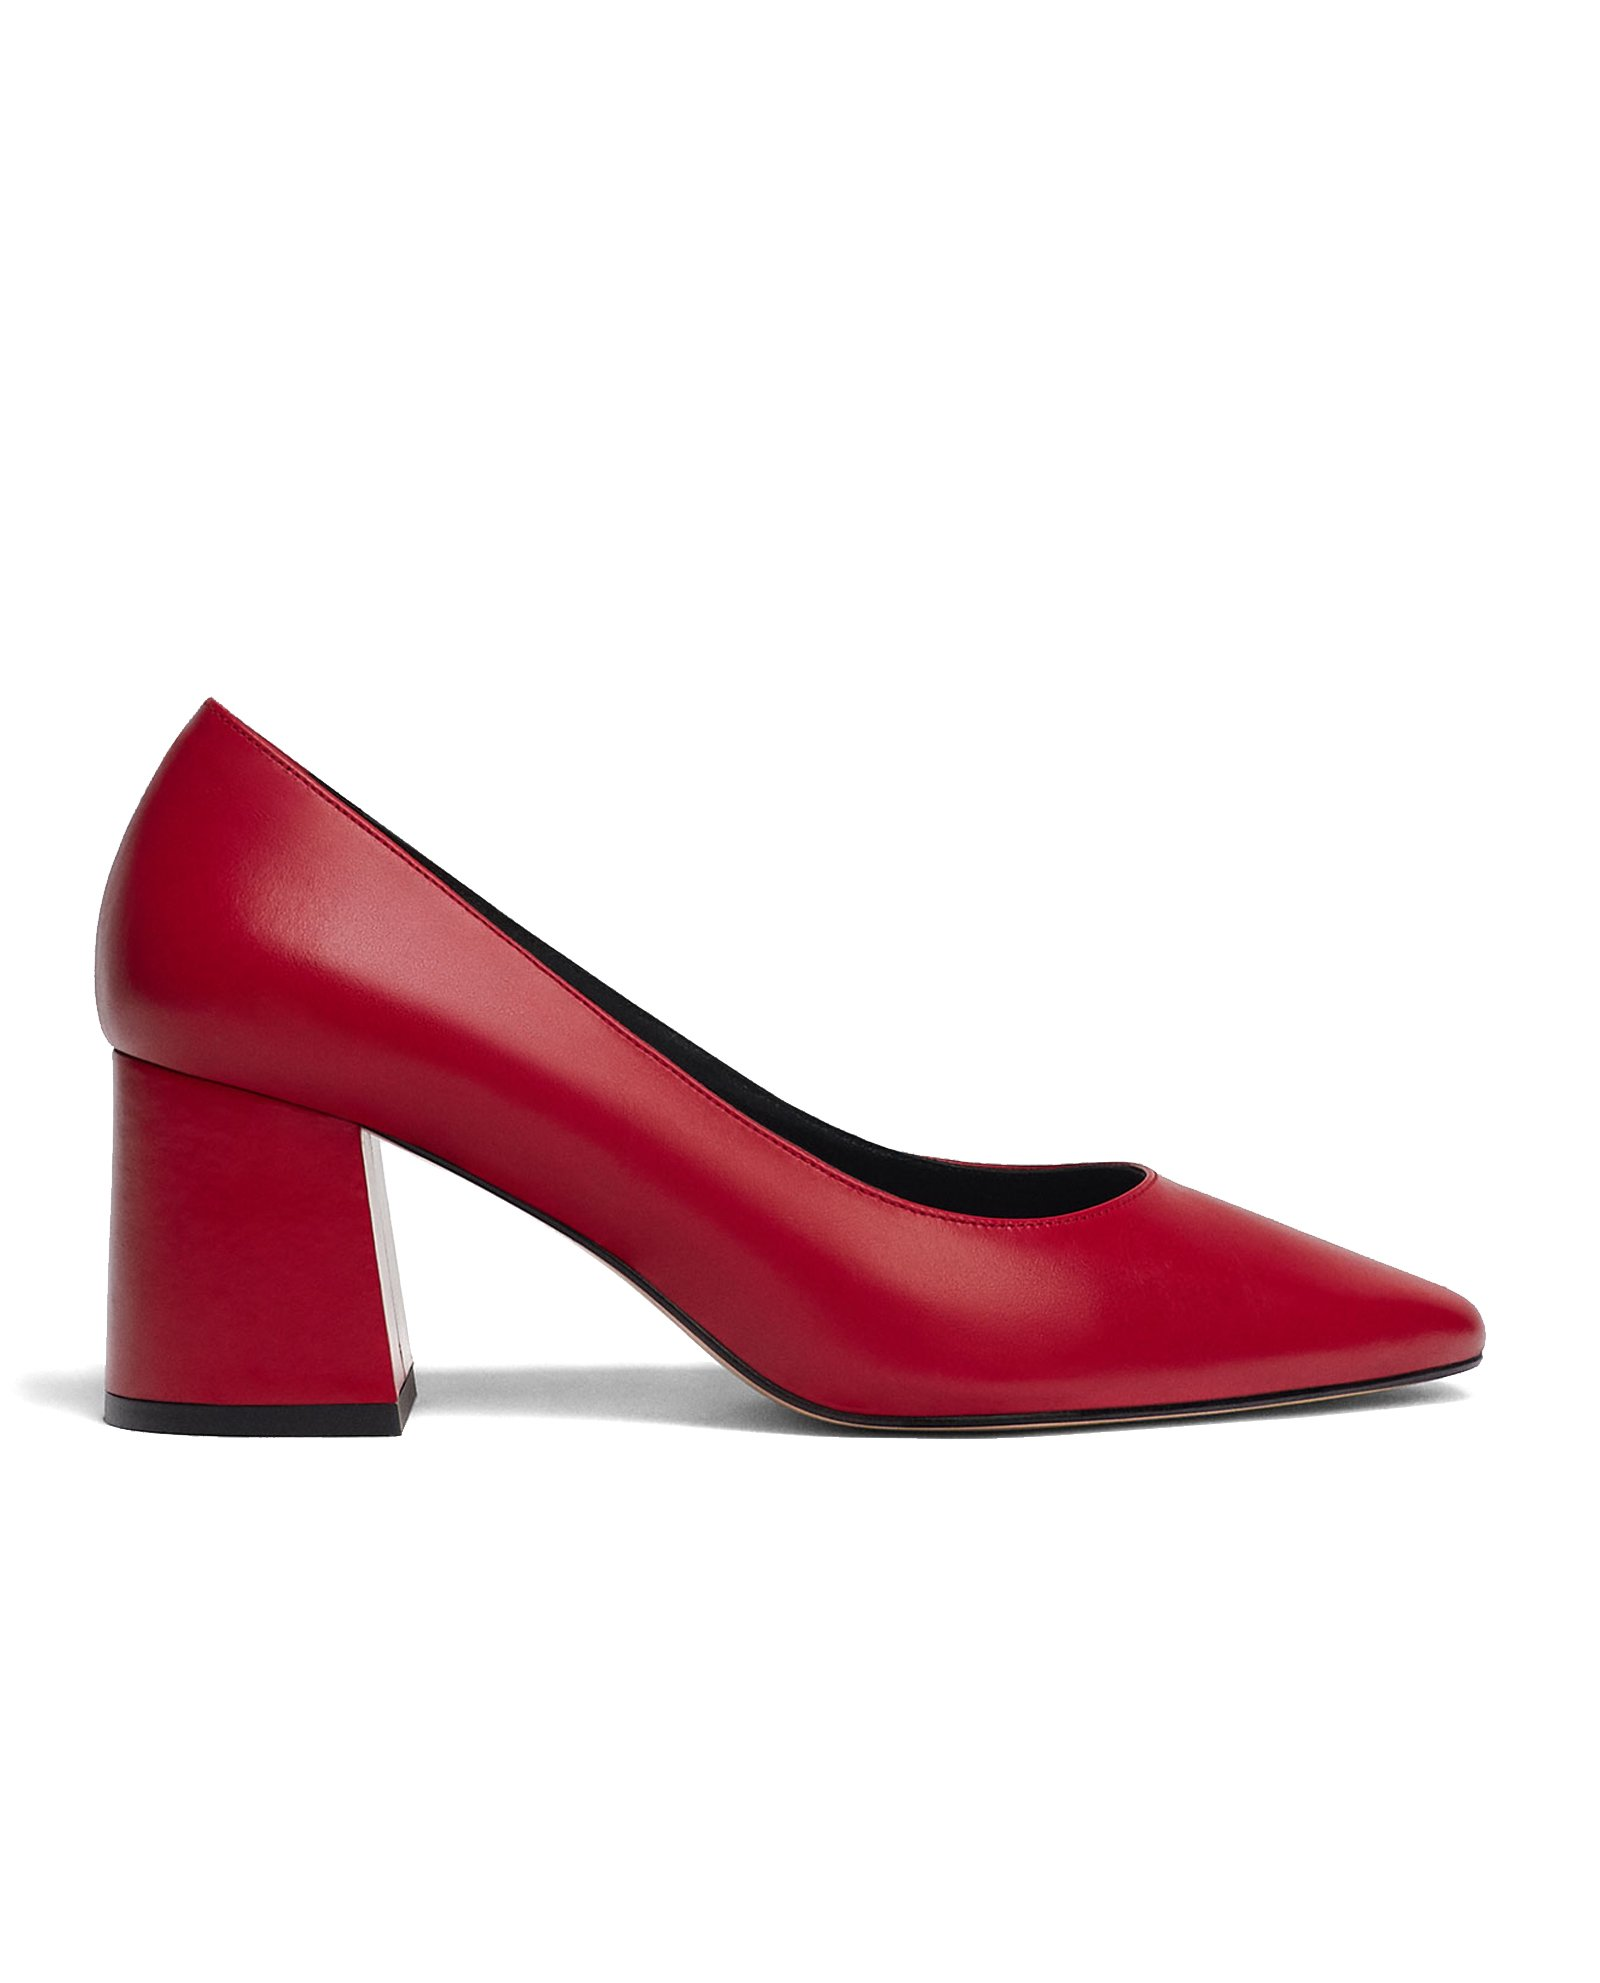 Uterque Women Red leather love high heel court shoes 4143/351 (40 EU | 9 US | 7 UK) by Uterque (Image #1)